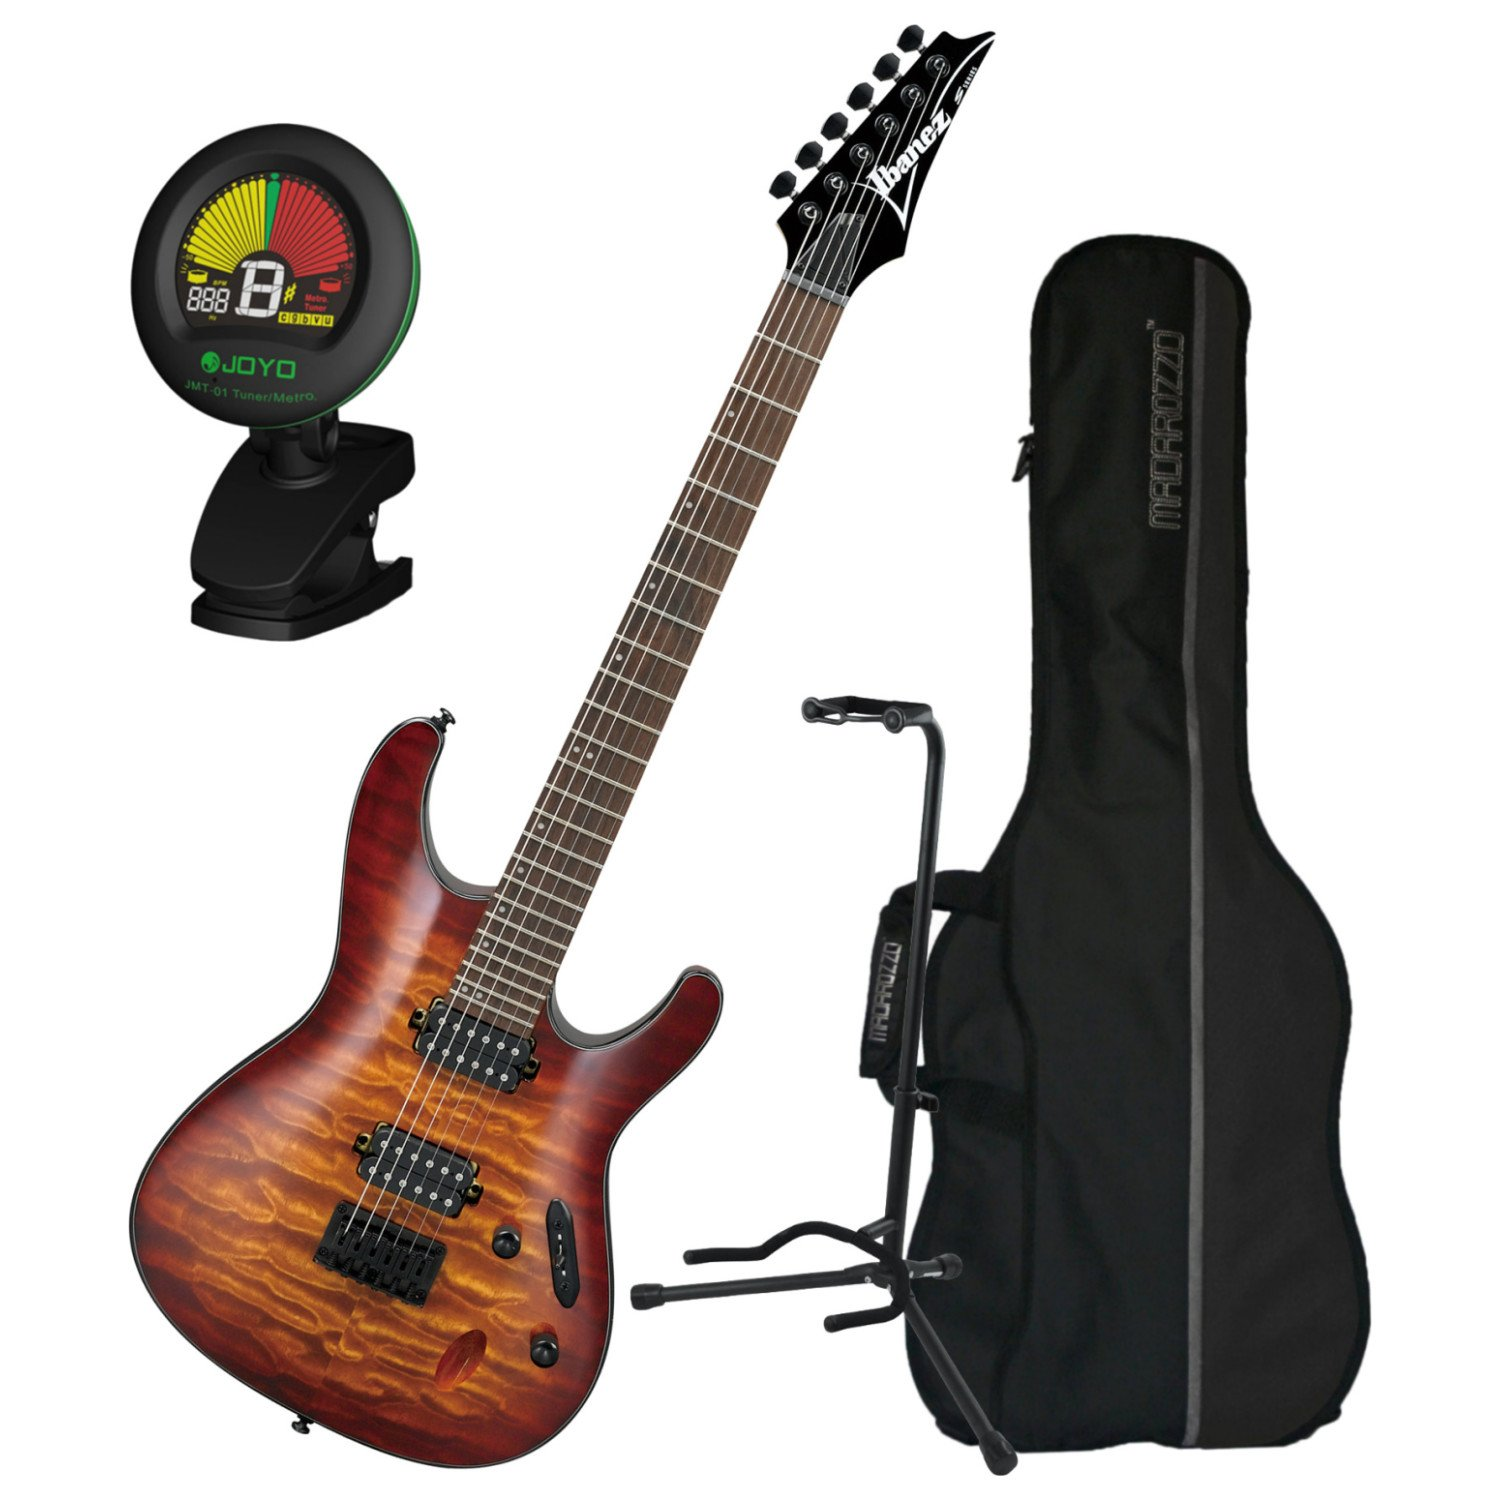 Cheap Ibanez S Series S621QM Dragon Eye Burst Electric Guitar w/ Gig Bag Tuner and Stand Black Friday & Cyber Monday 2019